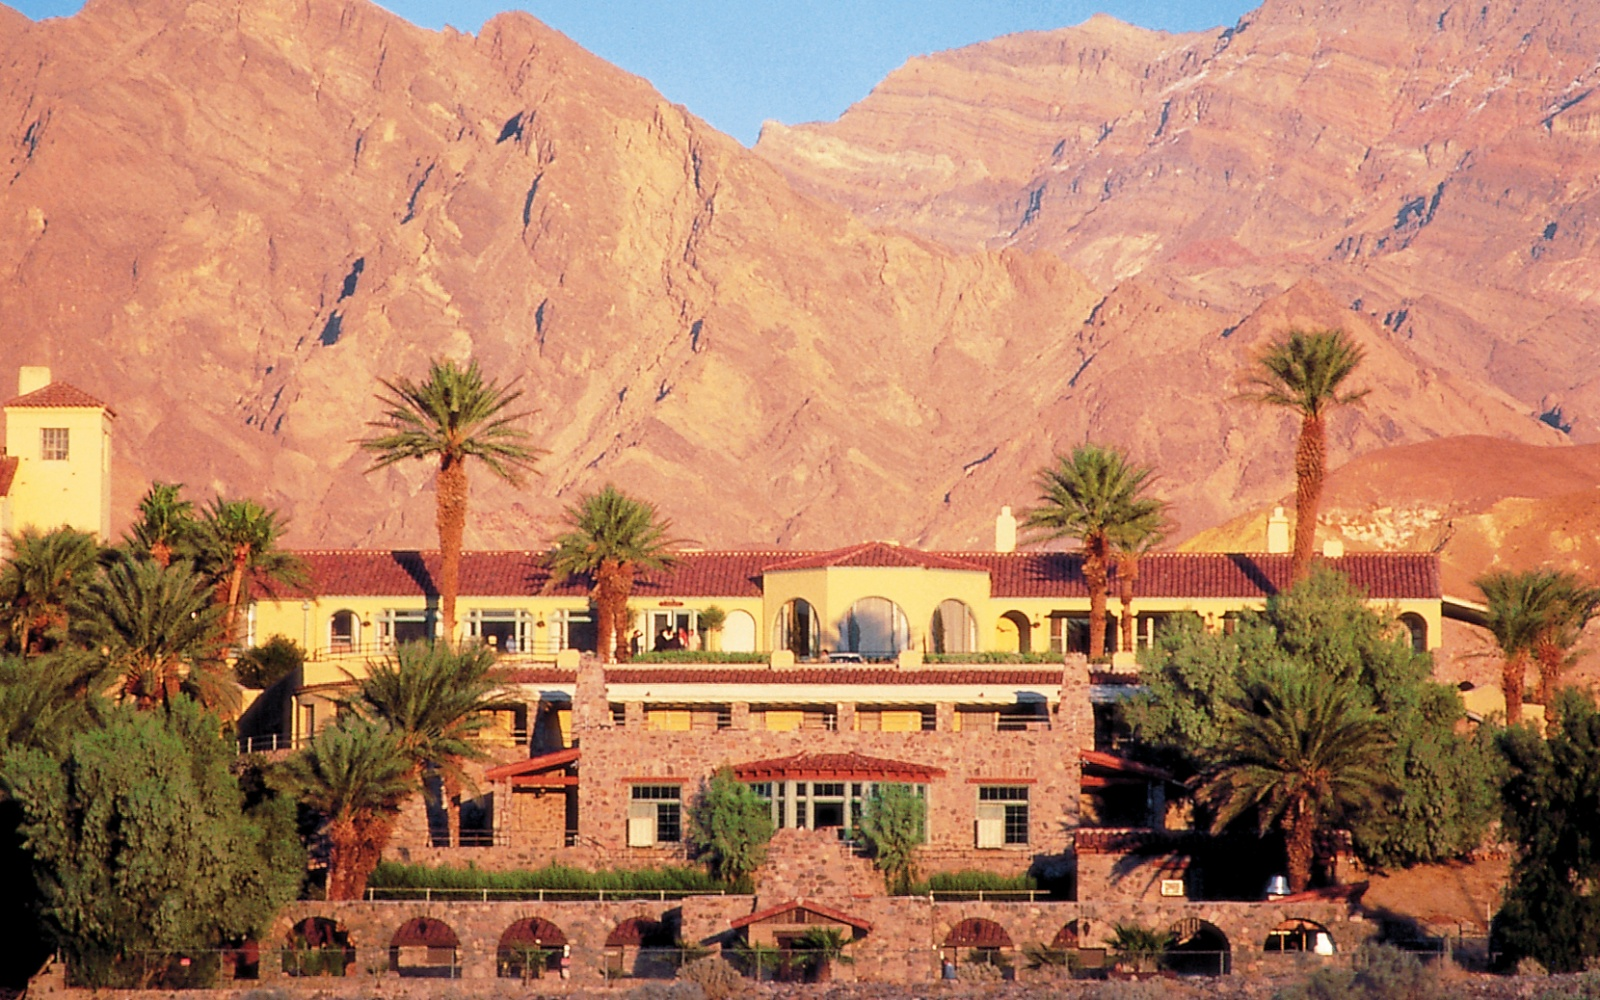 Furnace Creek Resort, Death Valley National Park, CA